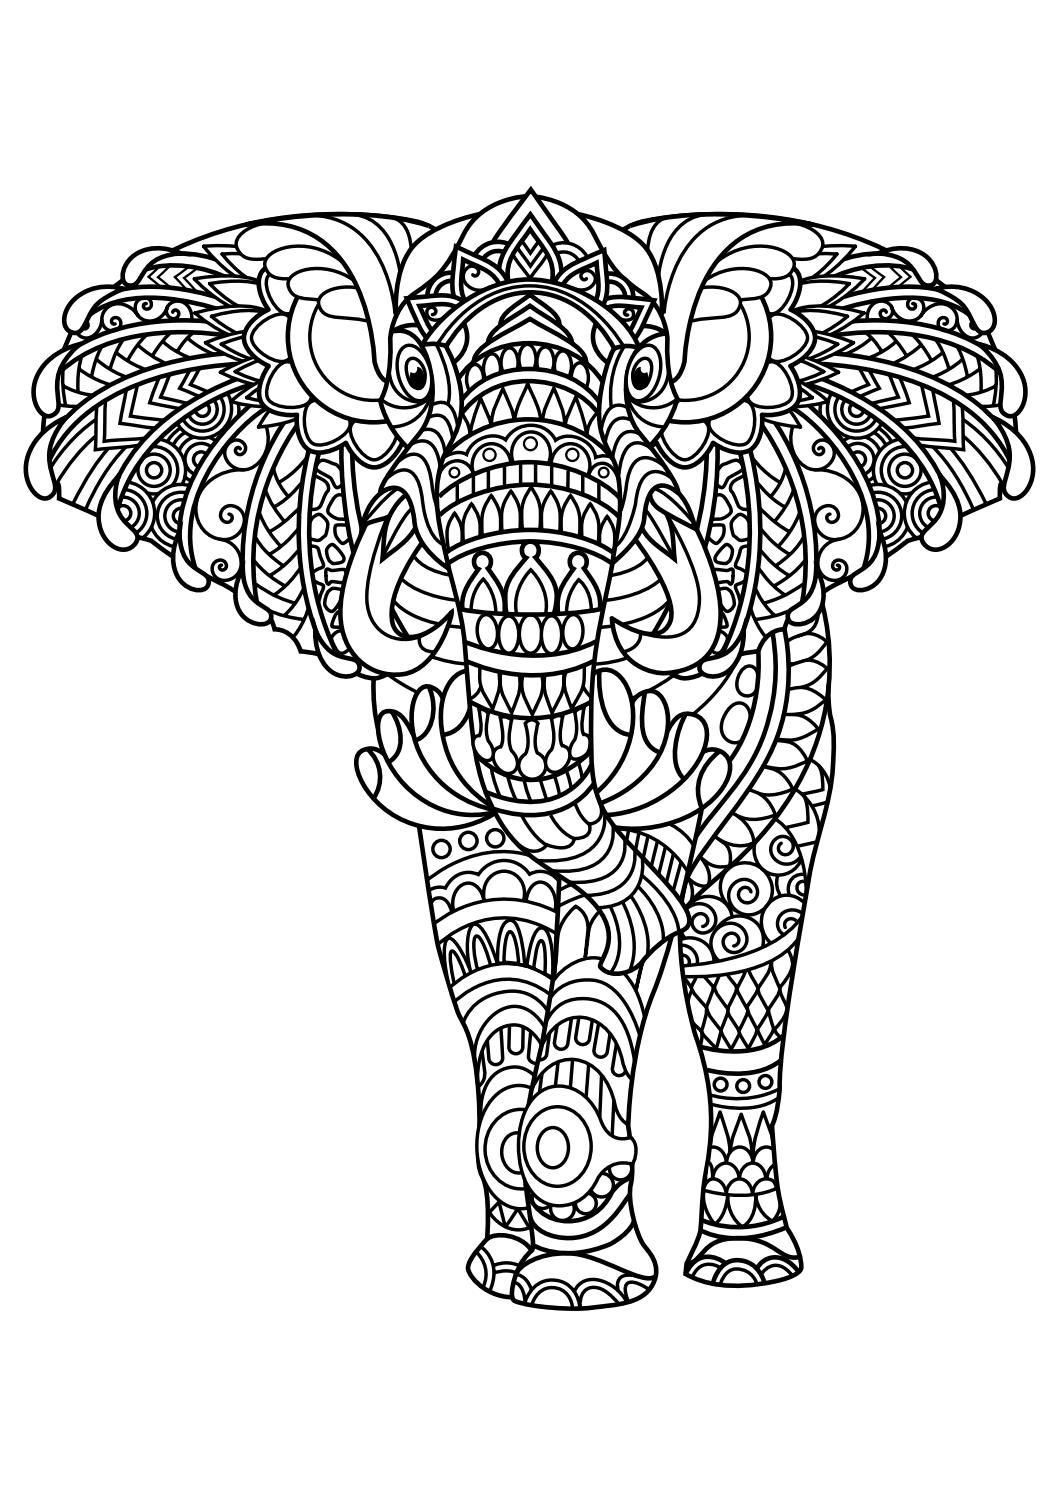 Animal Coloring Pages Pdf Elephant Coloring Page Horse Coloring